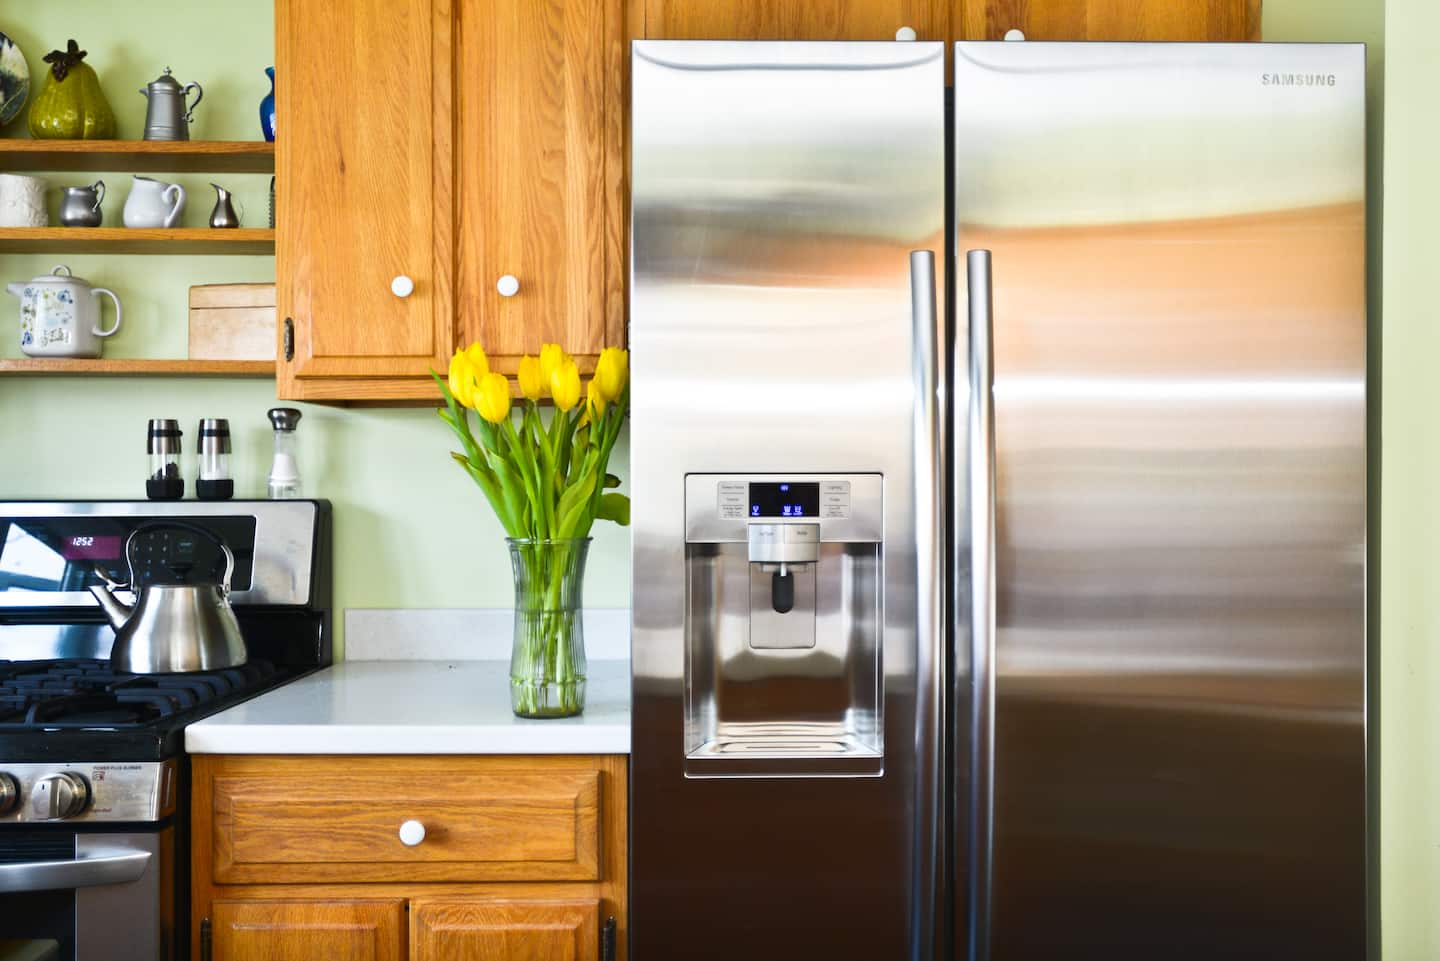 Refrigerator Smells? How to Stop and Prevent Fridge Odor | Angie's List